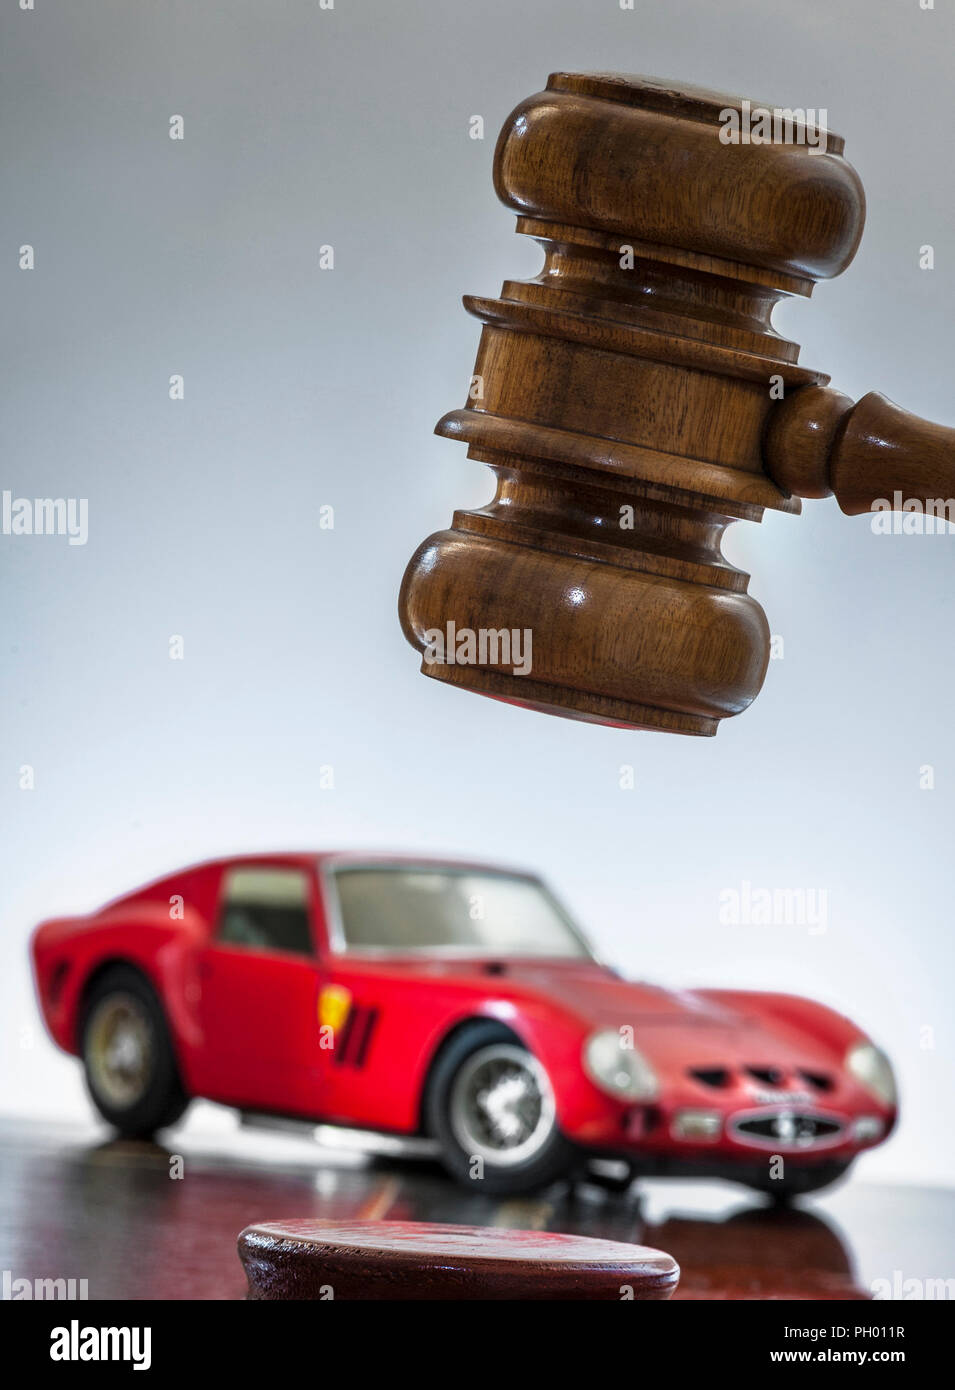 1963 Ferrari 250 GTO with auctioneers hammer in sale-room auction situation Concept image of classic renowned red vintage Ferrari with auction hammer - Stock Image